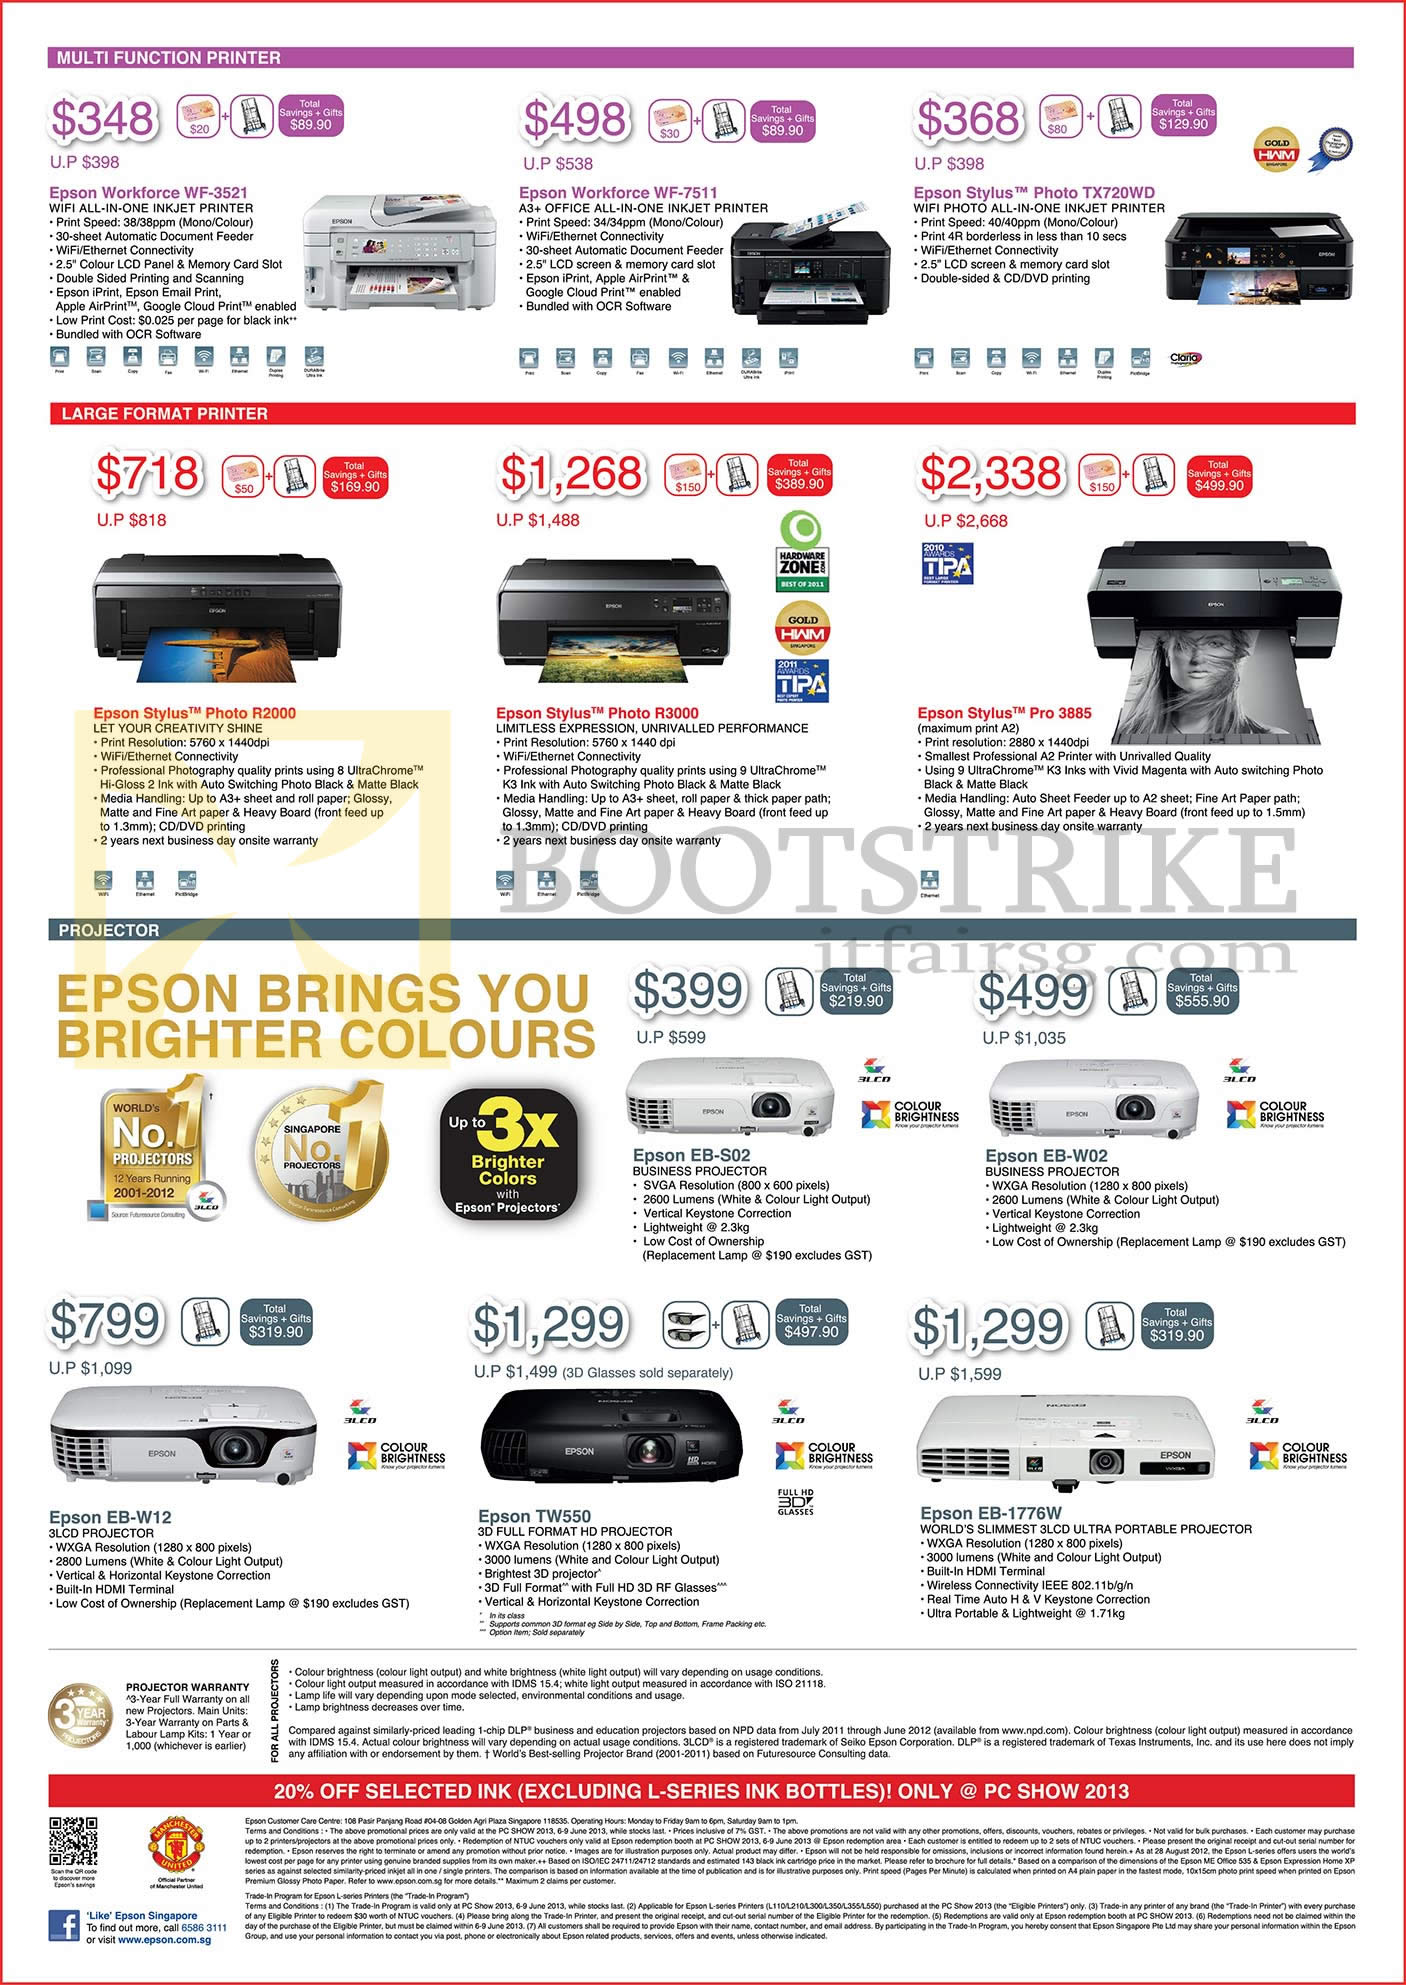 PC SHOW 2013 price list image brochure of Epson Printers Inkjet, Projectors Workforce WF-3521, WF-7511, Stylus Photo TX-720WD, R2000, R3000, Pro 3885, EB-S02, EB-W02, EB-W12, TW550, EB-1776W